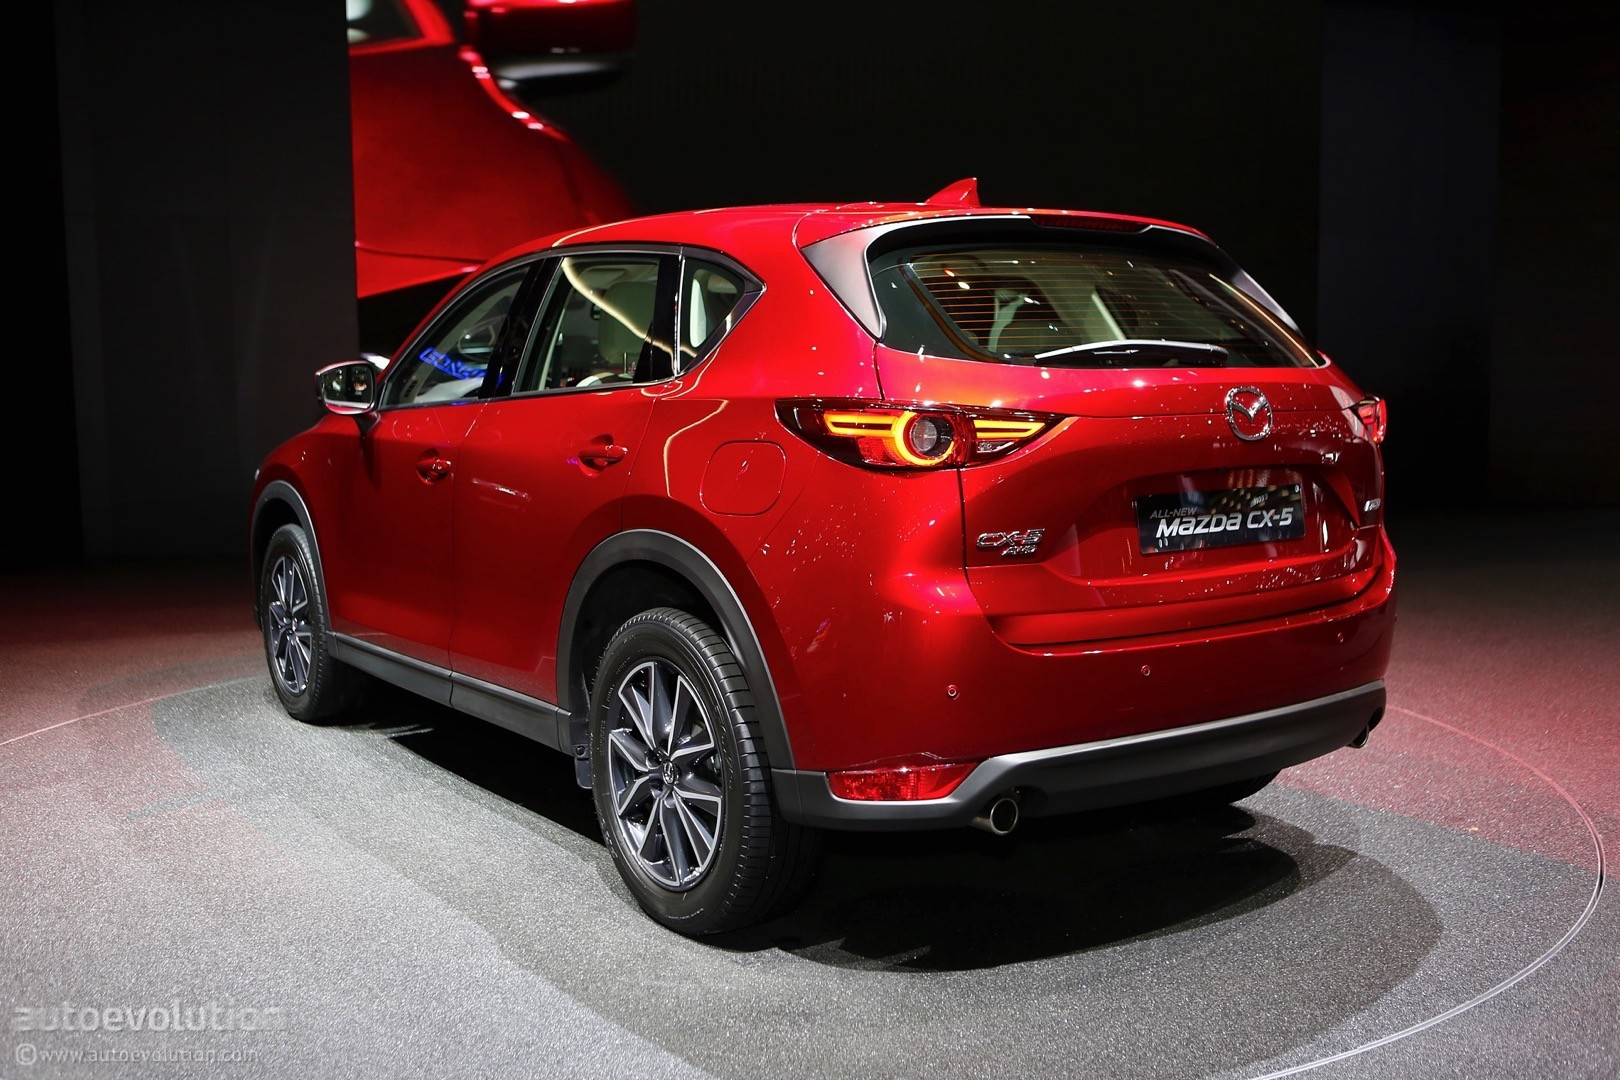 2017 Mazda CX-5 Brags With Soul Red Crystal Paintwork In Geneva ...